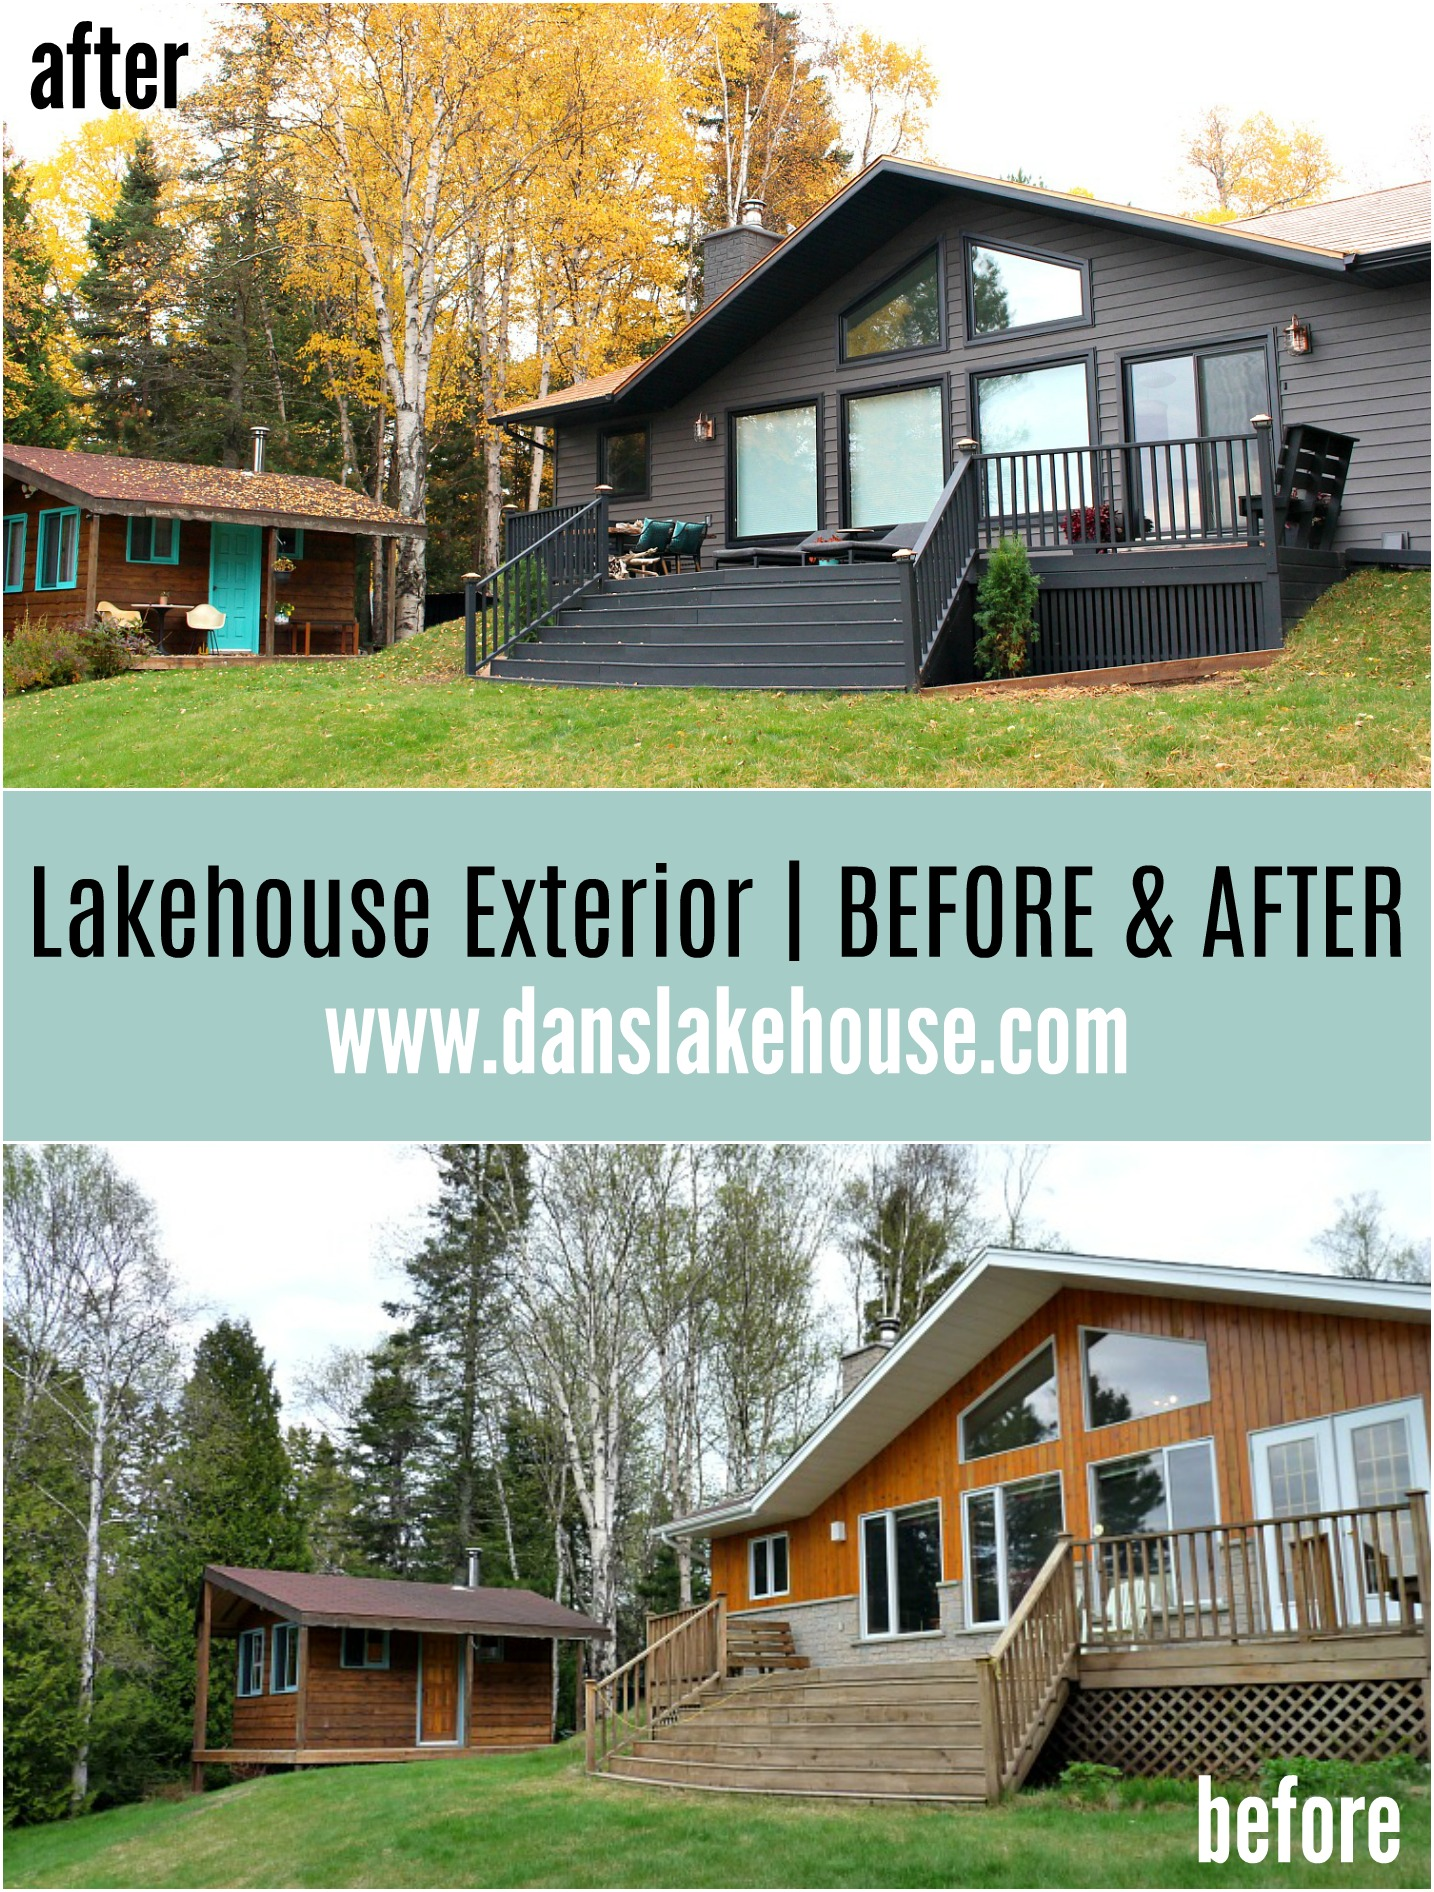 Lakehouse Exterior Transformation Before and After